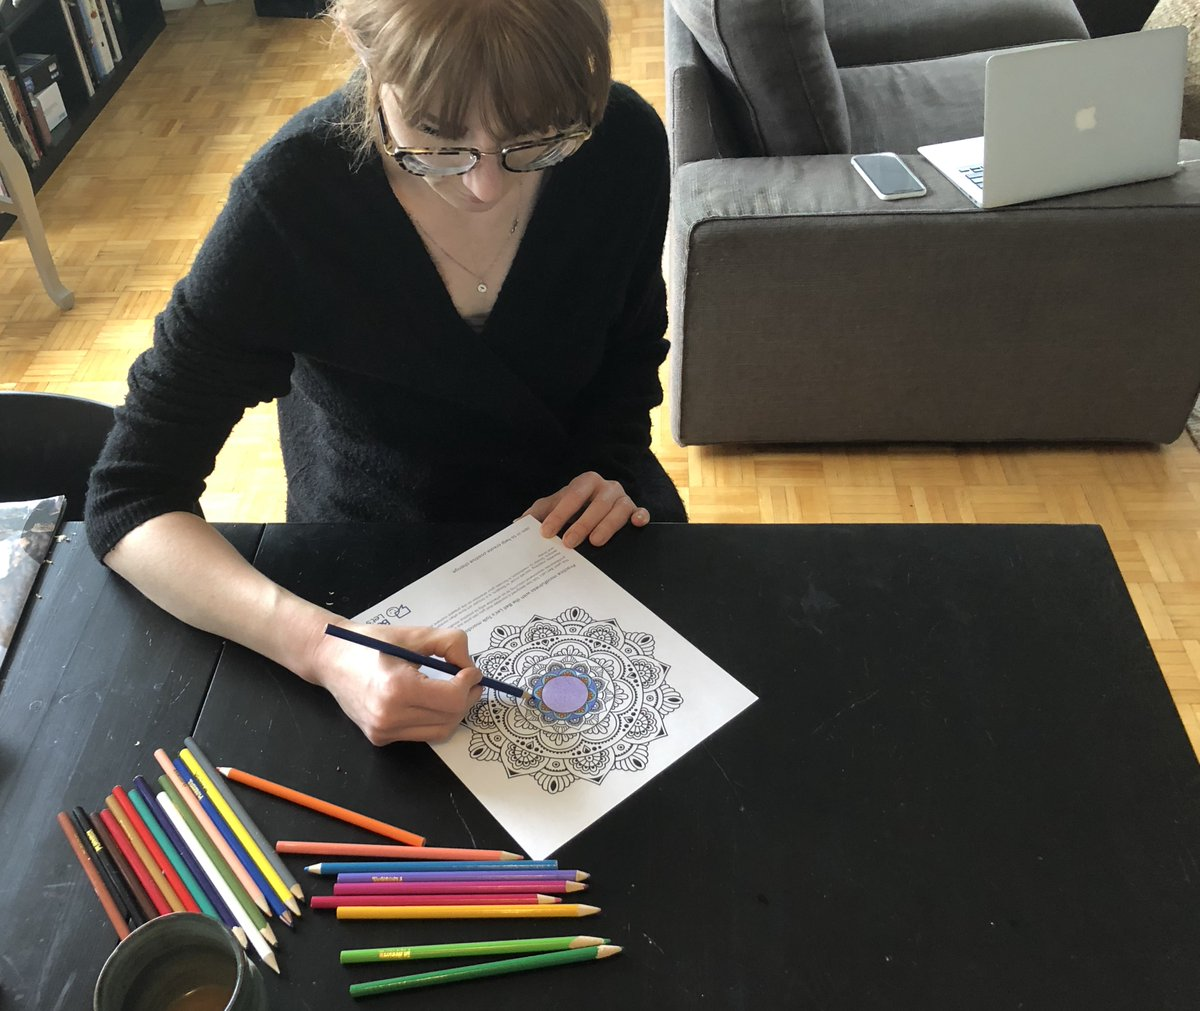 Many #mentalhealth professionals recommend colouring as a good way to practice mindfulness. Download the #BellLetsTalk mandala colouring sheet and other tools to promote mental health in our toolkit: https://t.co/ffqyORwJEP Let's get through this together. https://t.co/WxLXygB9zo